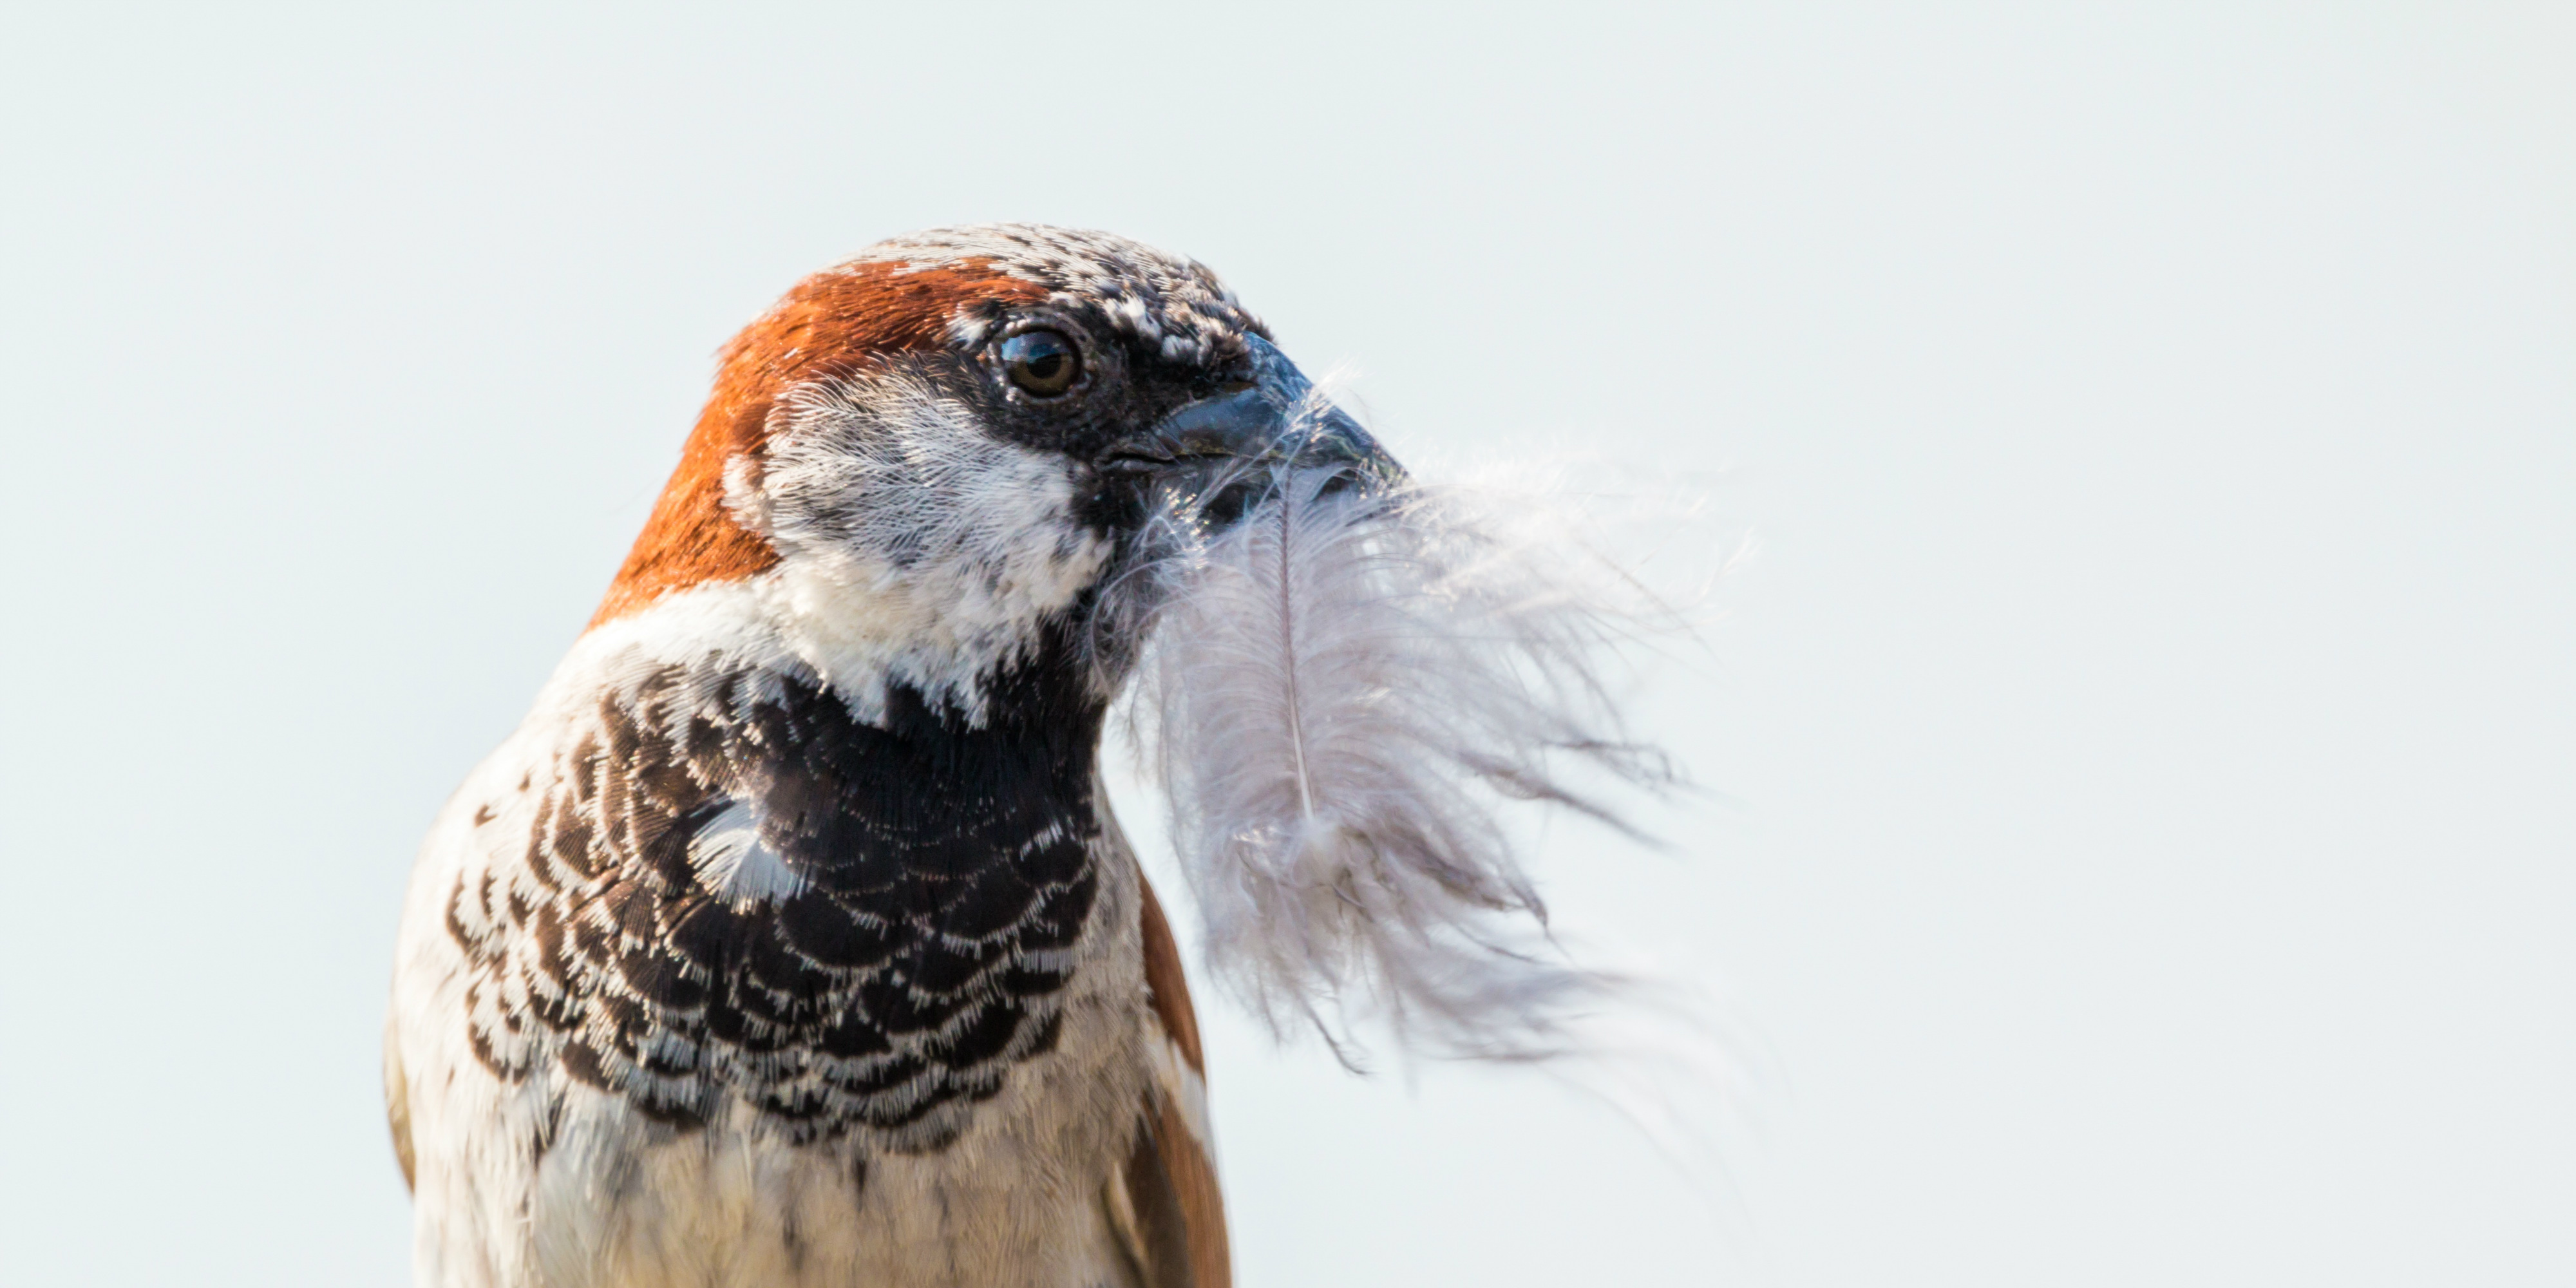 A bird collects feathers to provide insulation in its nest | eco-friendly tourism.